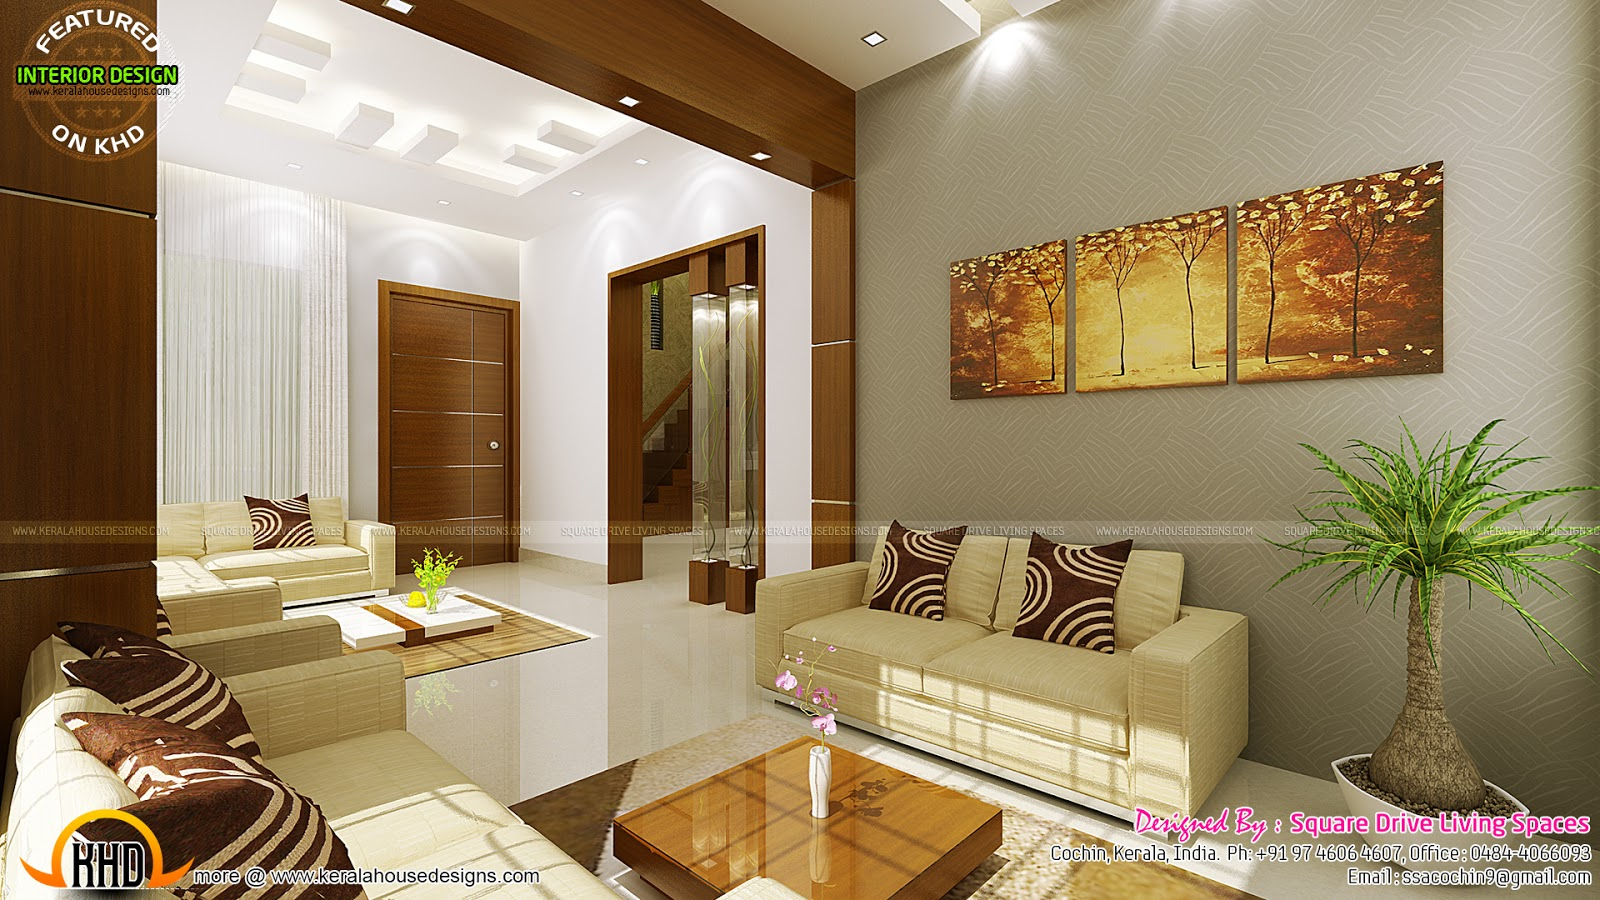 Contemporary kitchen dining and living room kerala home for Interior design